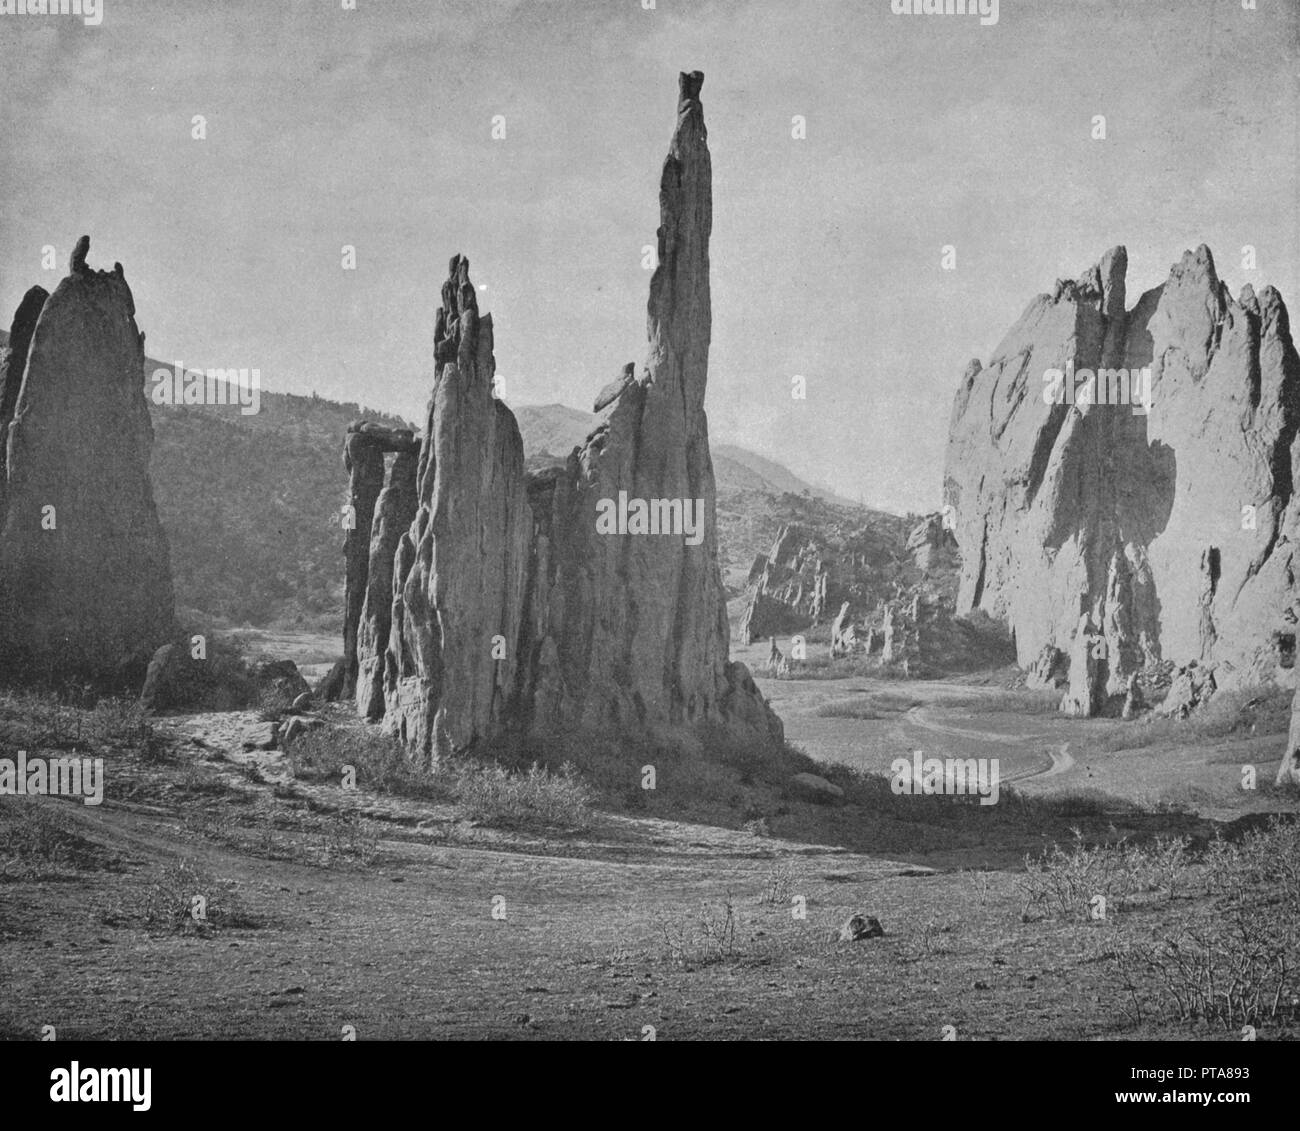 Cathedral Spires, Garden of the Gods, Colorado, USA, c1900. Steep sandstone rock formations caused by erosion over millions of years. From Scenic Marvels of the New World edited by Prof. Geo.R. Cromwell. [C.N.Greig & Co., c1900] - Stock Image